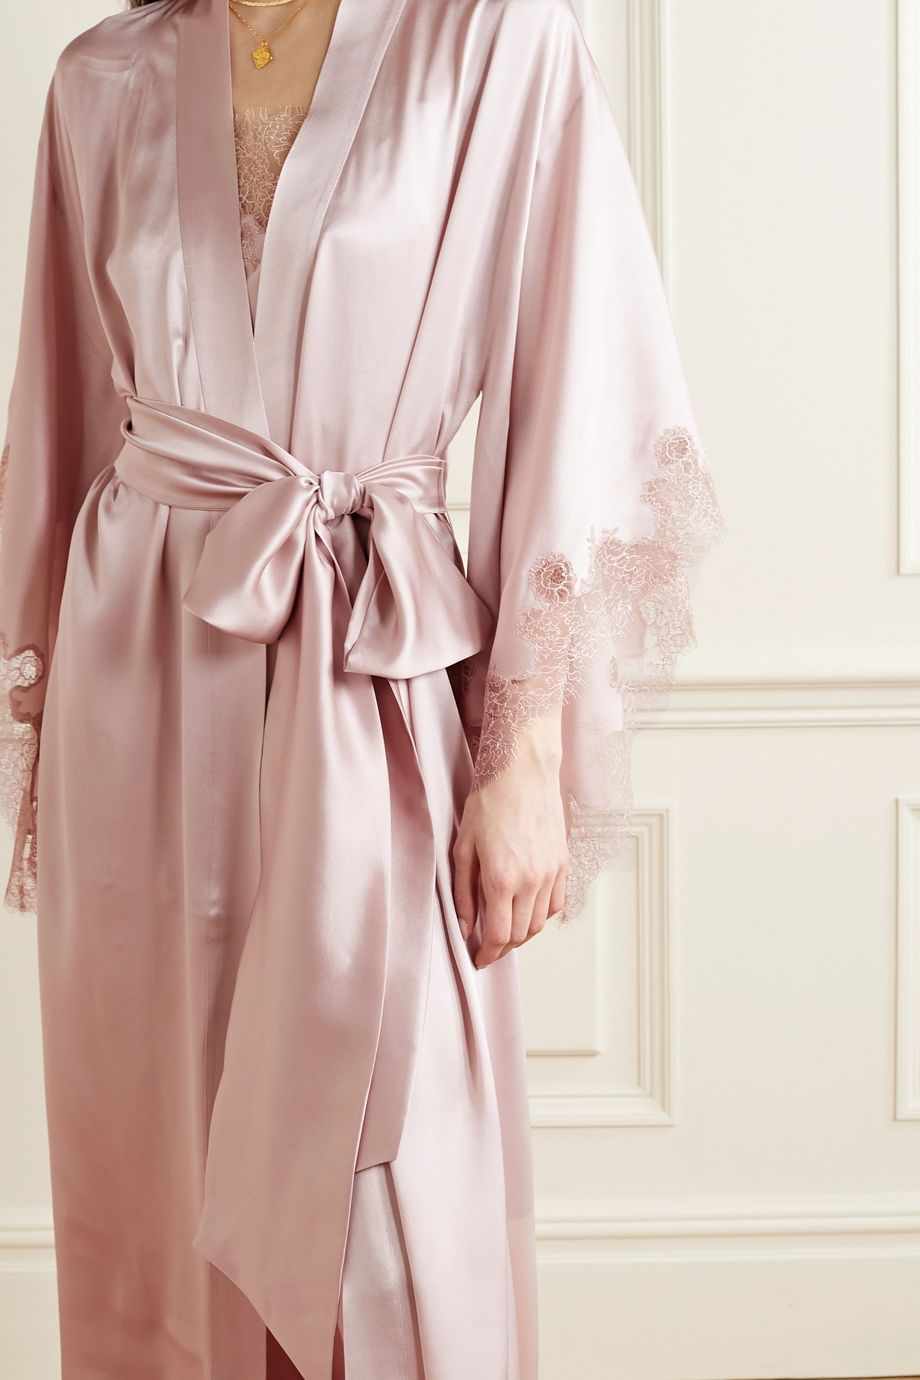 Carine Gilson Caudry lace-trimmed silk-satin robe